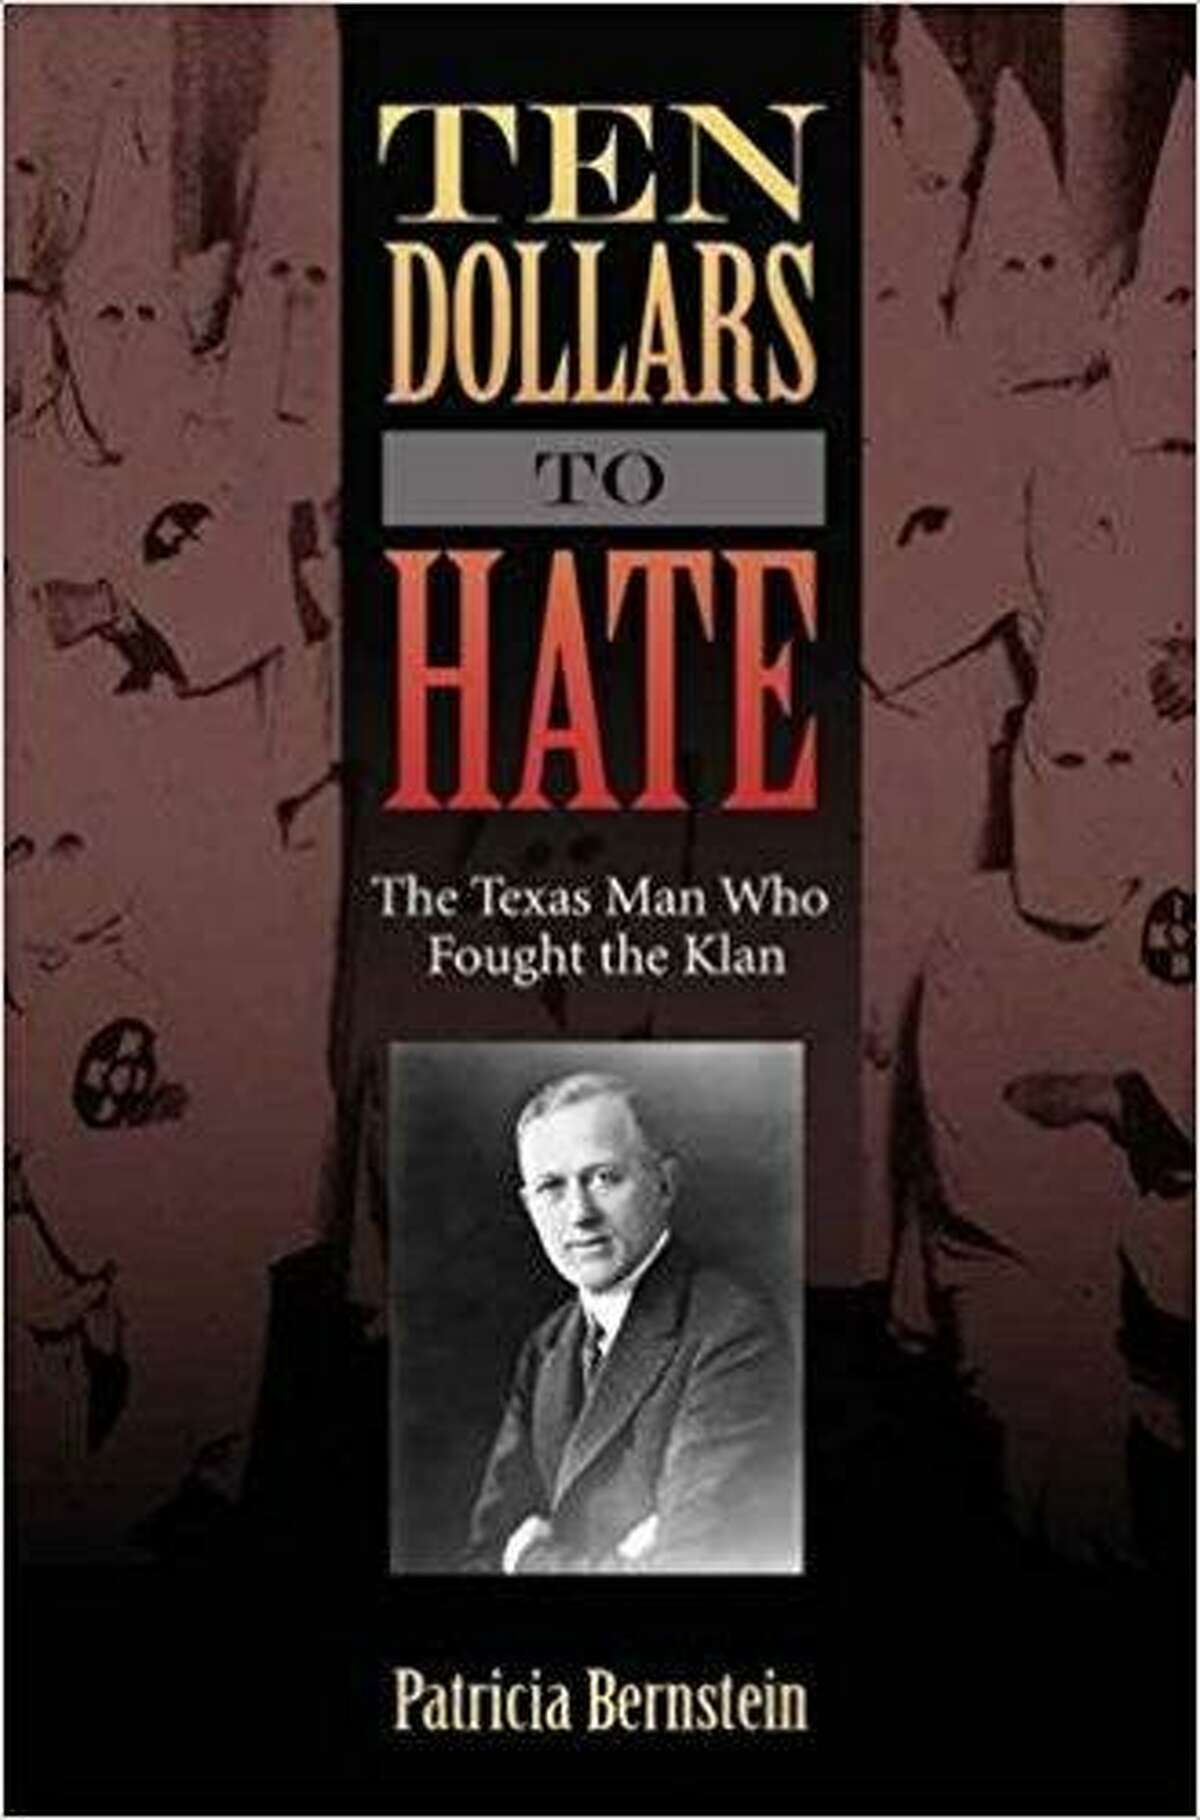 """""""Ten Dollars to Hate: The Texas Man Who Fought the Klan"""" by Patricia Bernstein"""